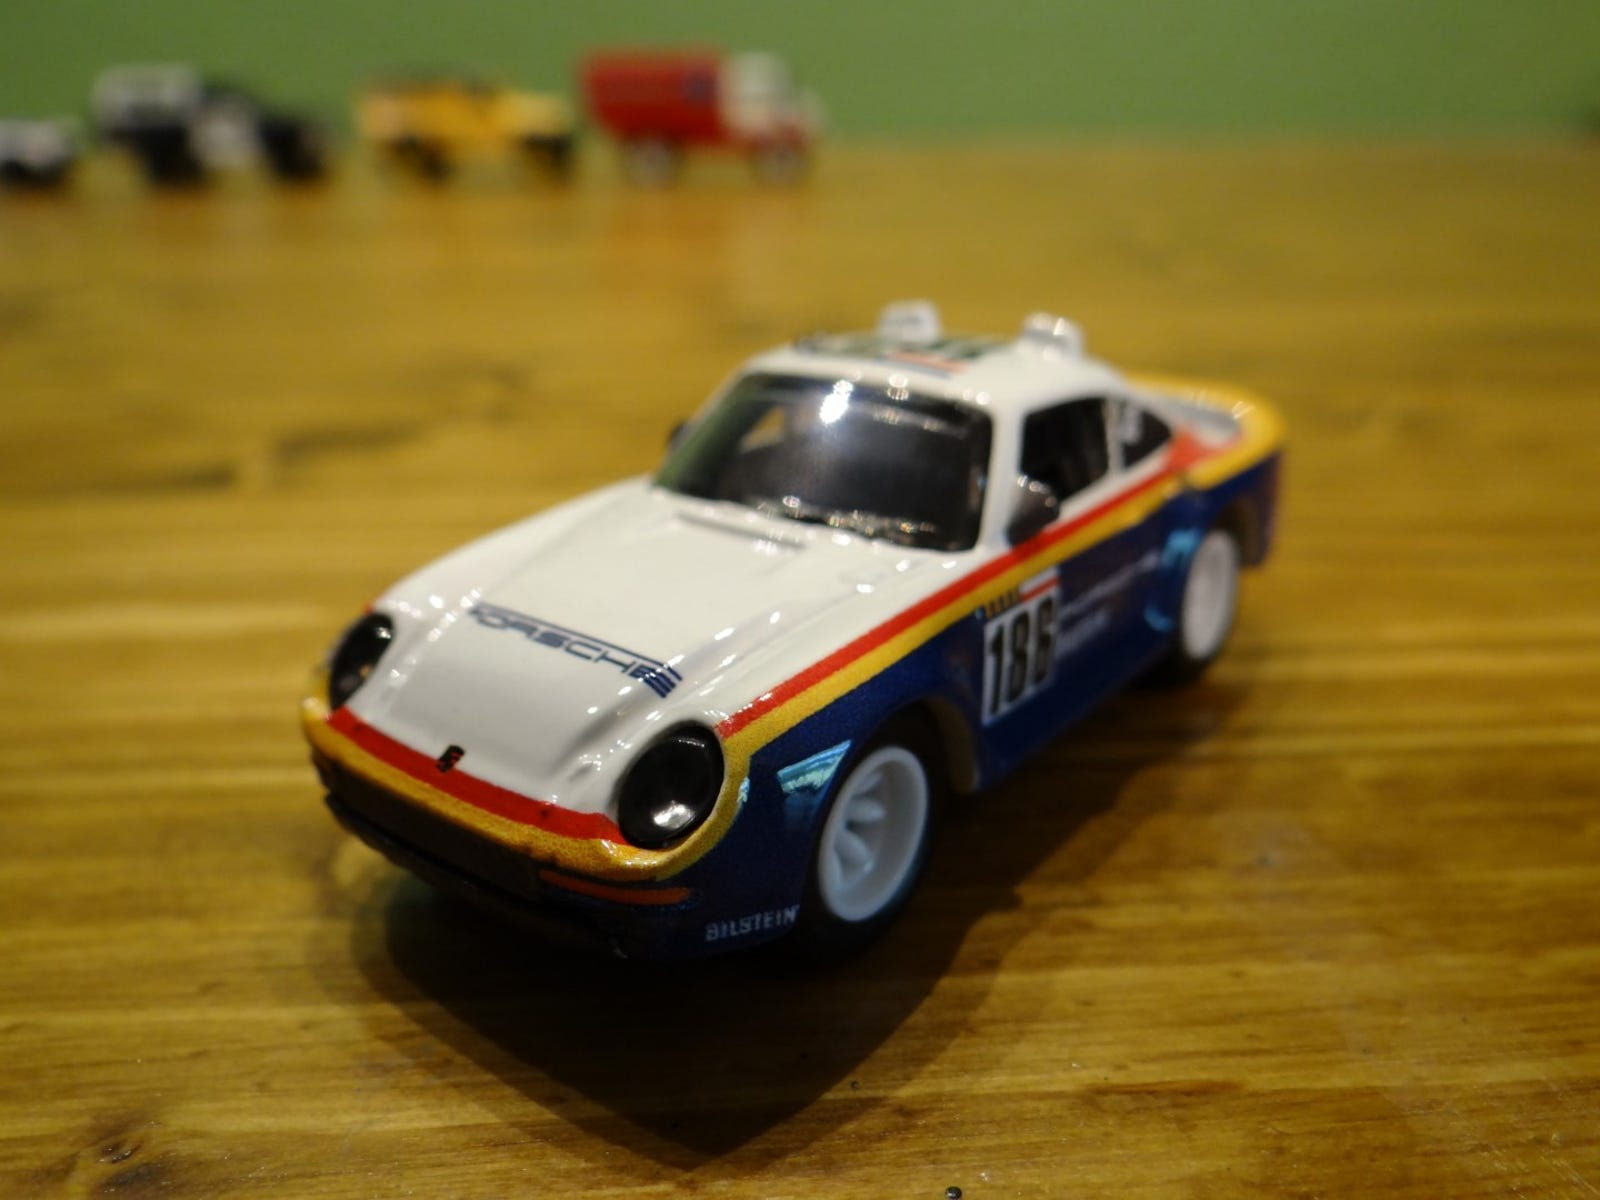 The 1986 Porsche 959 in a Rothmans livery with out the Rothmans logo.